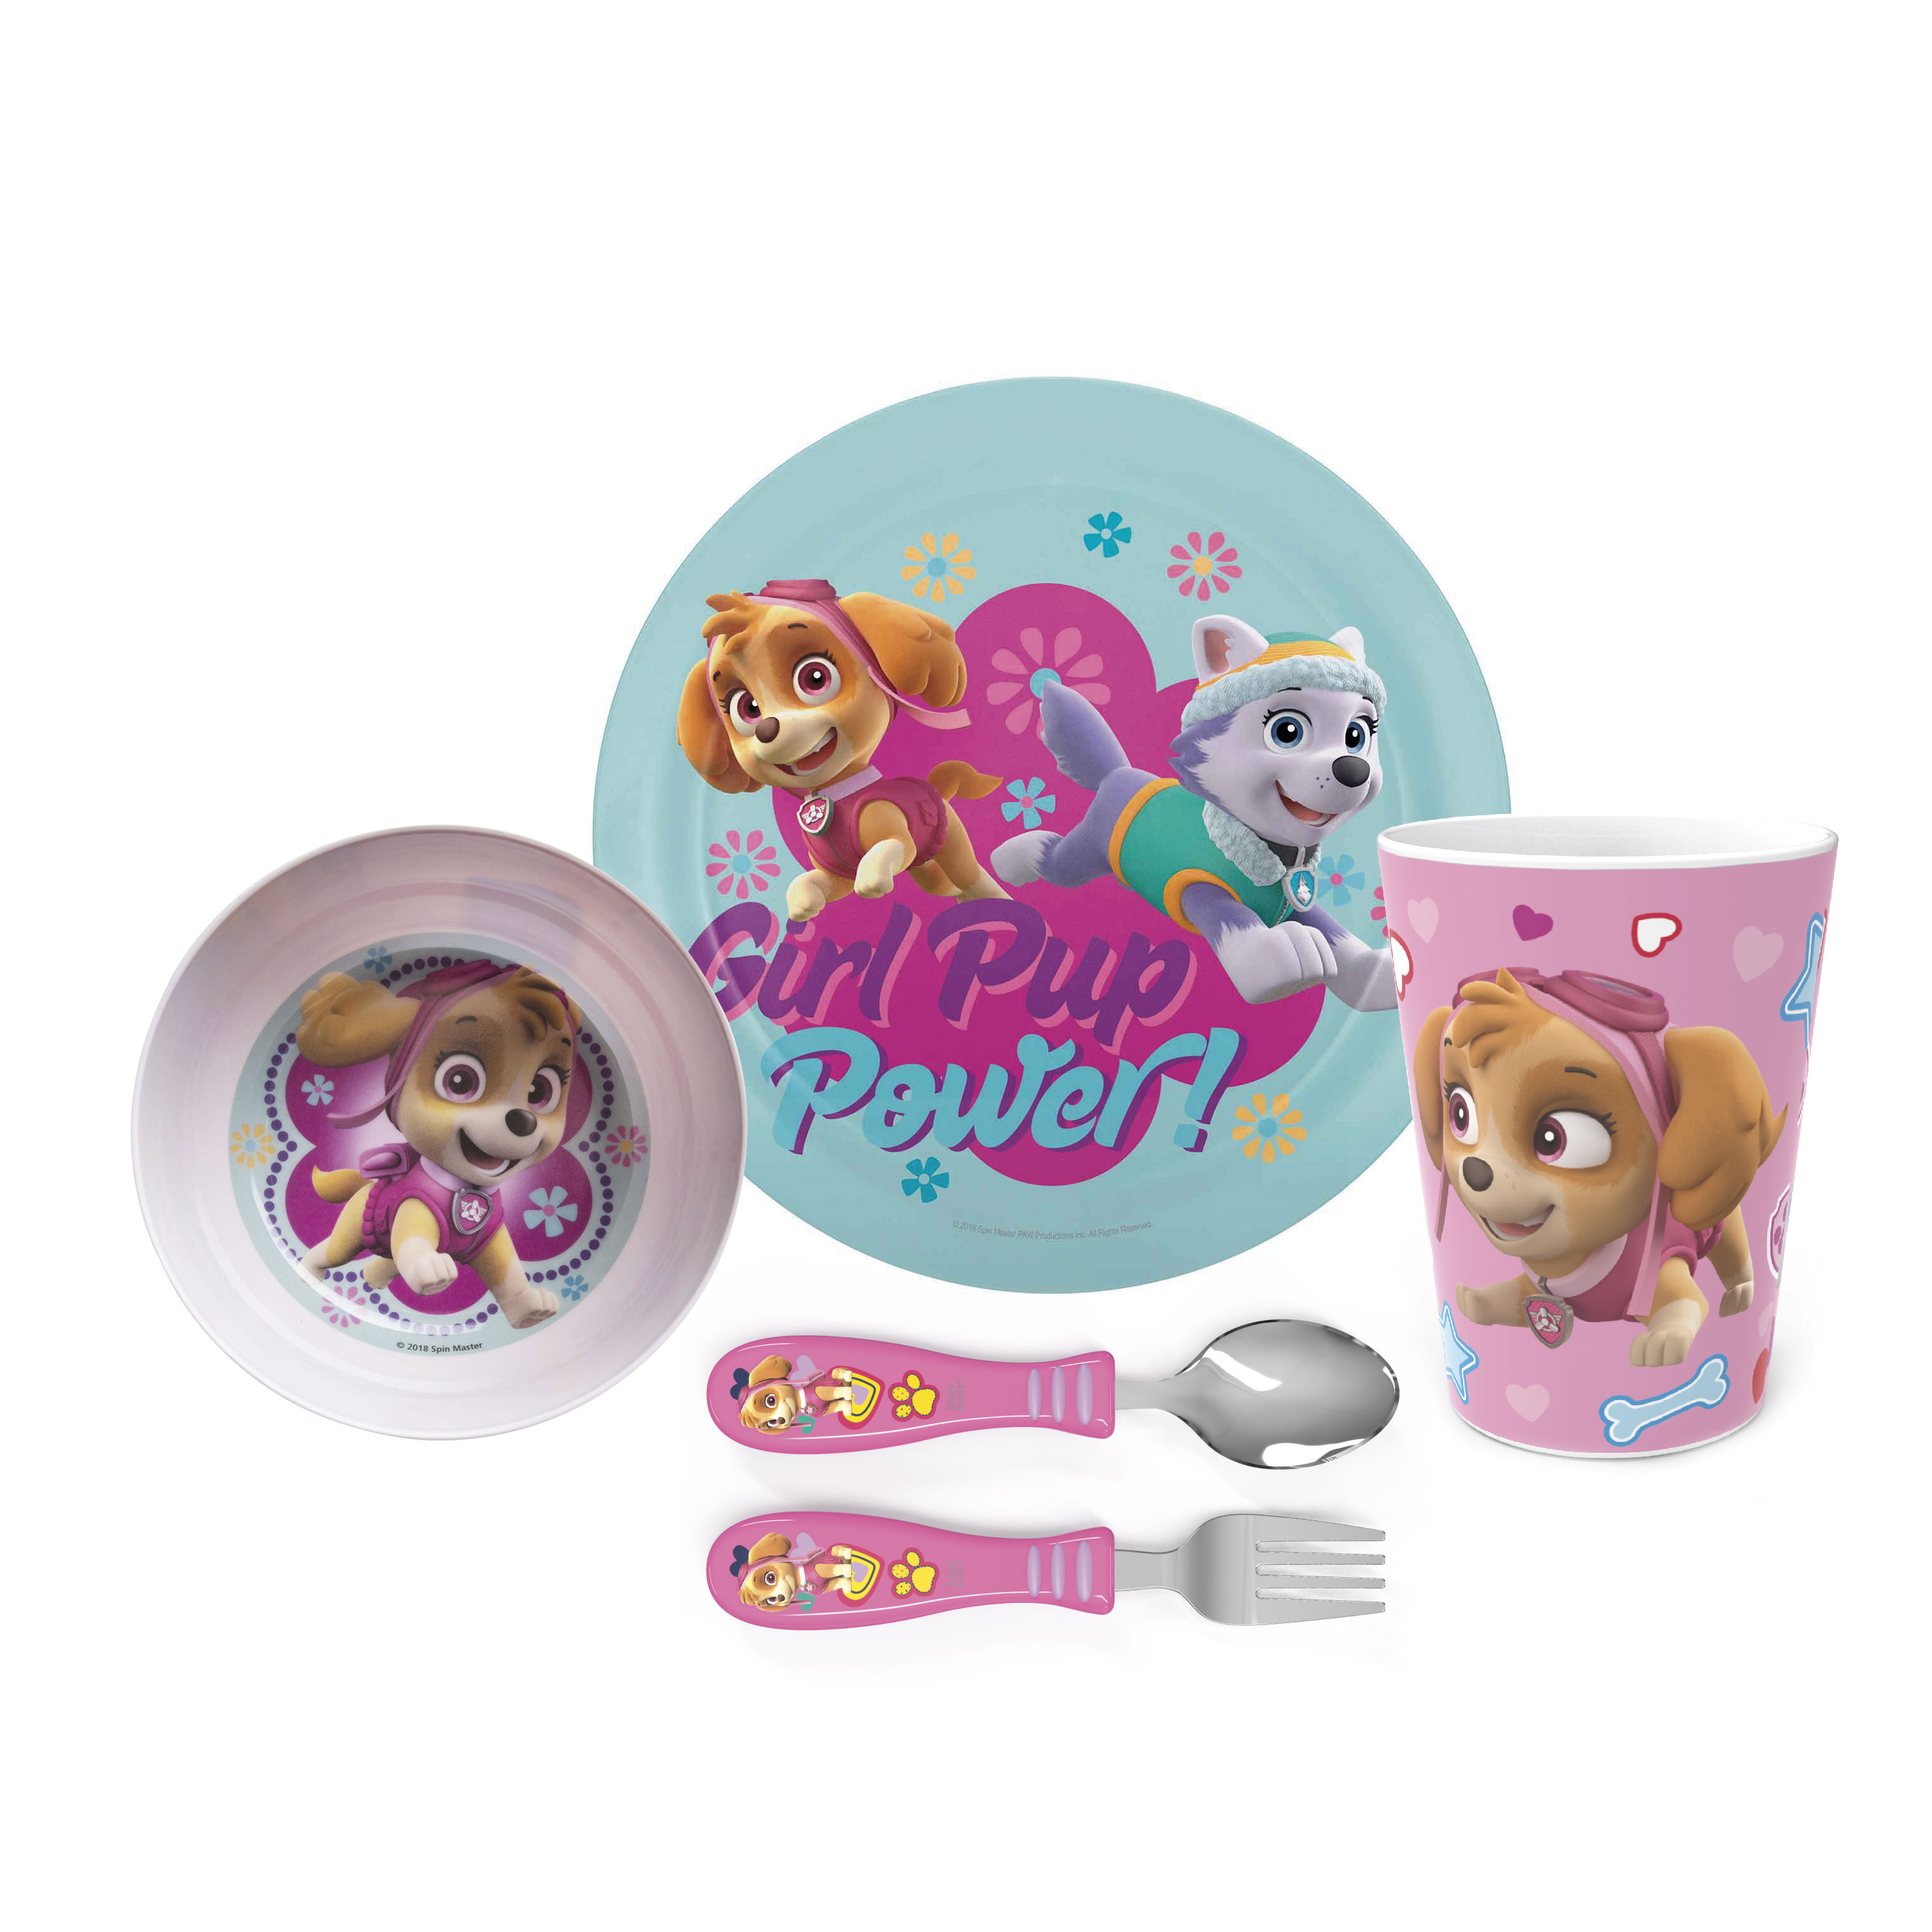 Paw Patrol Dinnerware Set, Skye and Everest, 5-piece set slideshow image 1